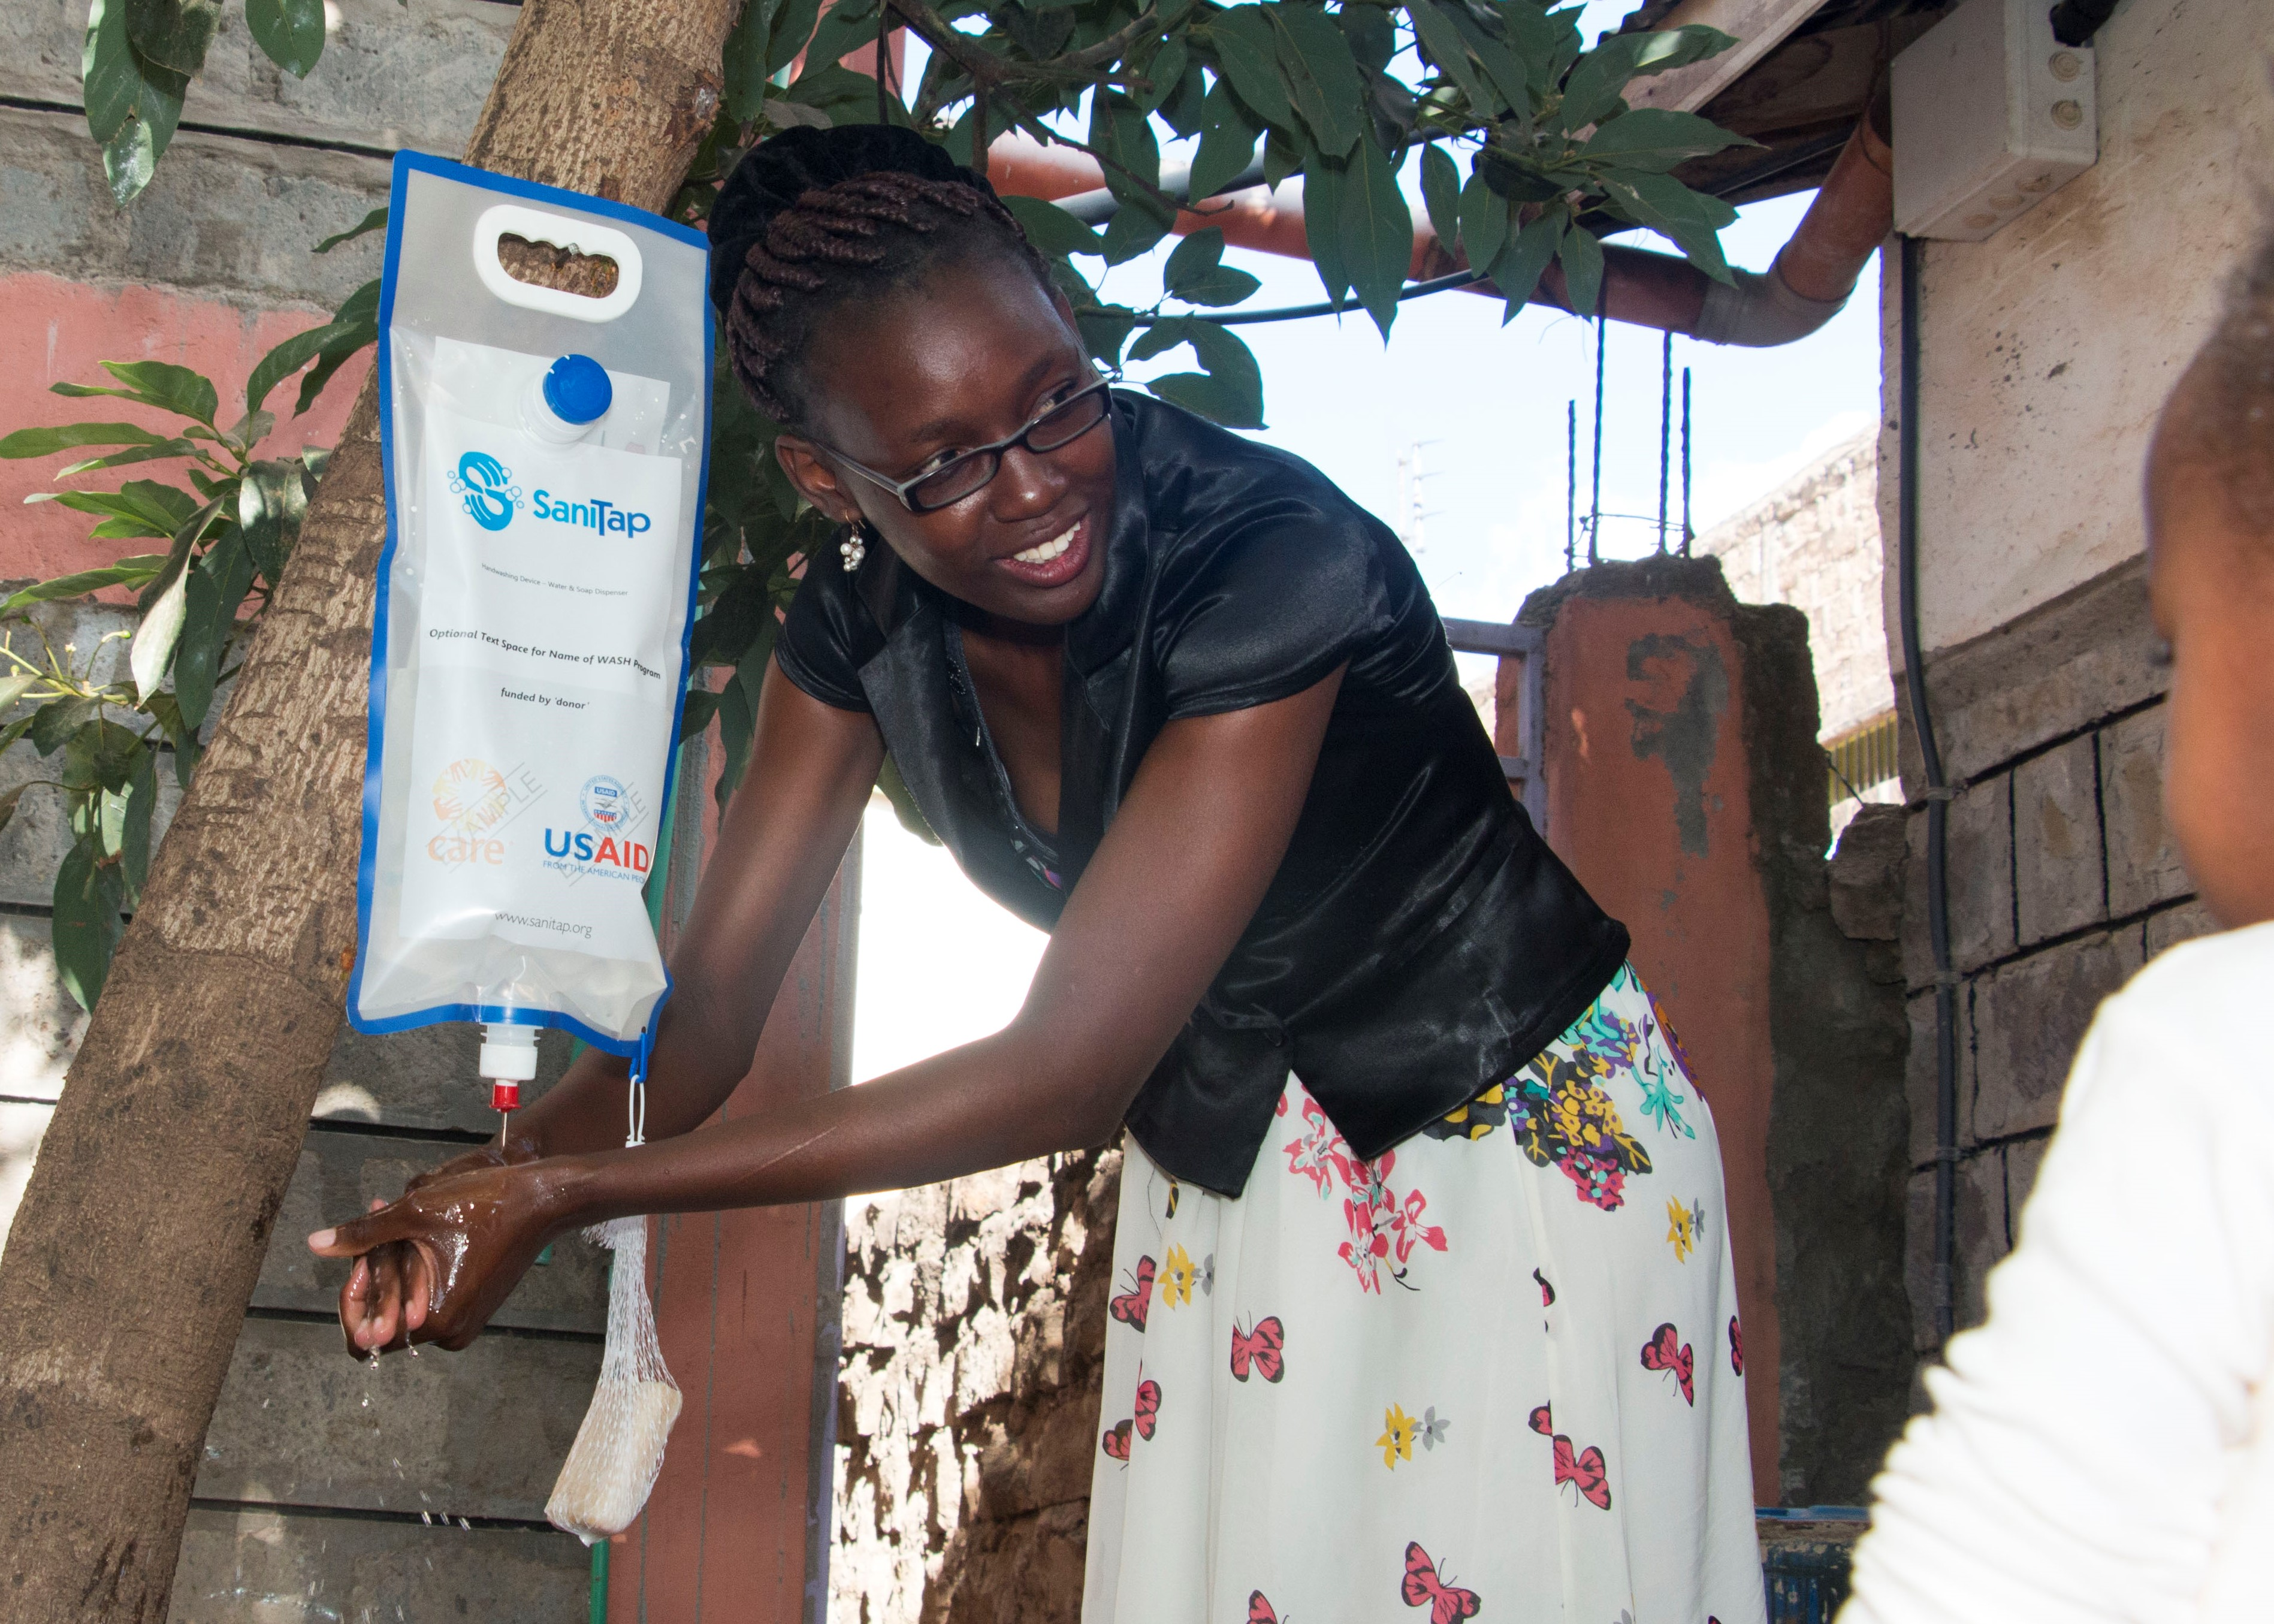 SaniTap - a handwashing device that helps reduce the spread of COVID-19 in developing countries / refugee and IDP camps